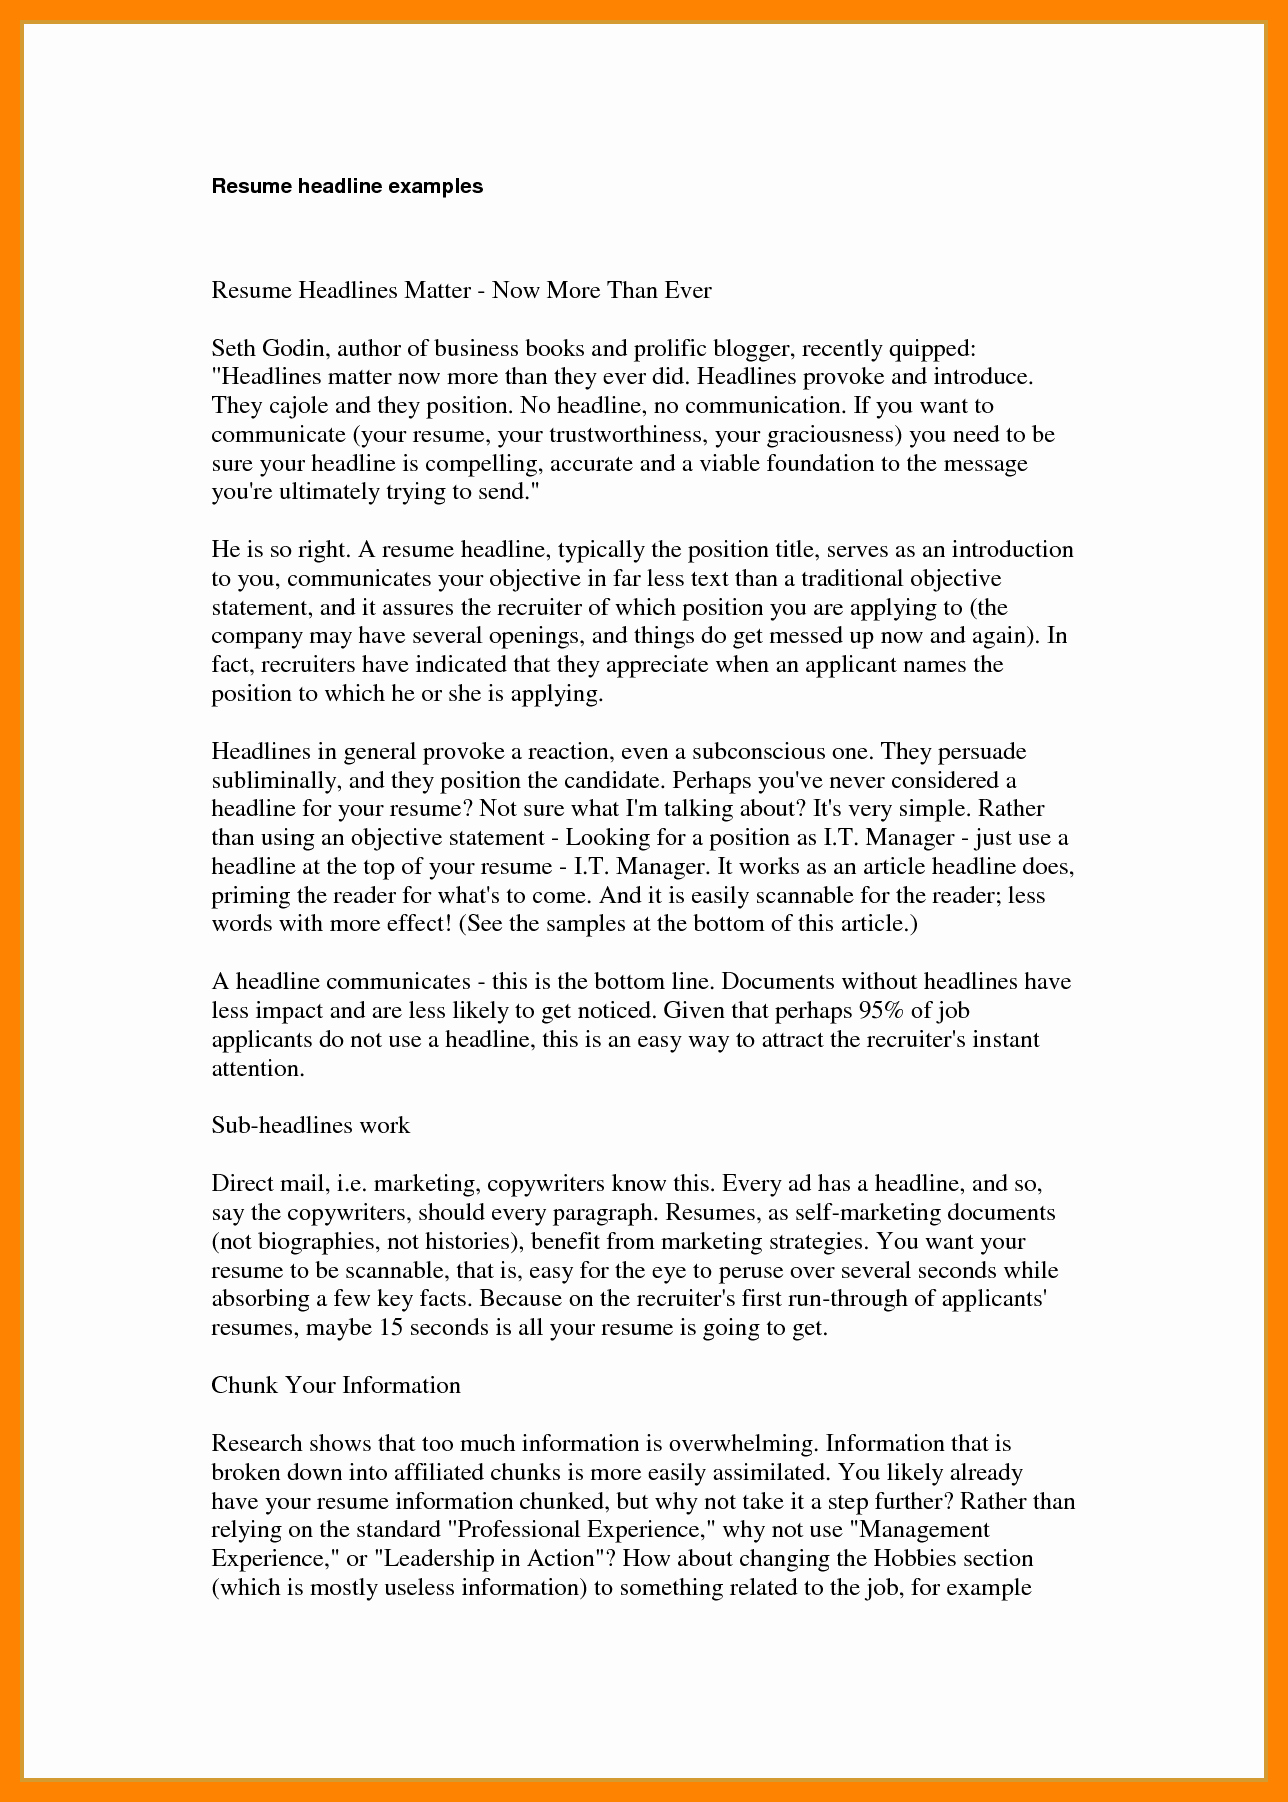 Search Engine Evaluator Resume Best Of Resume Headline for Accountant Resume Ideas